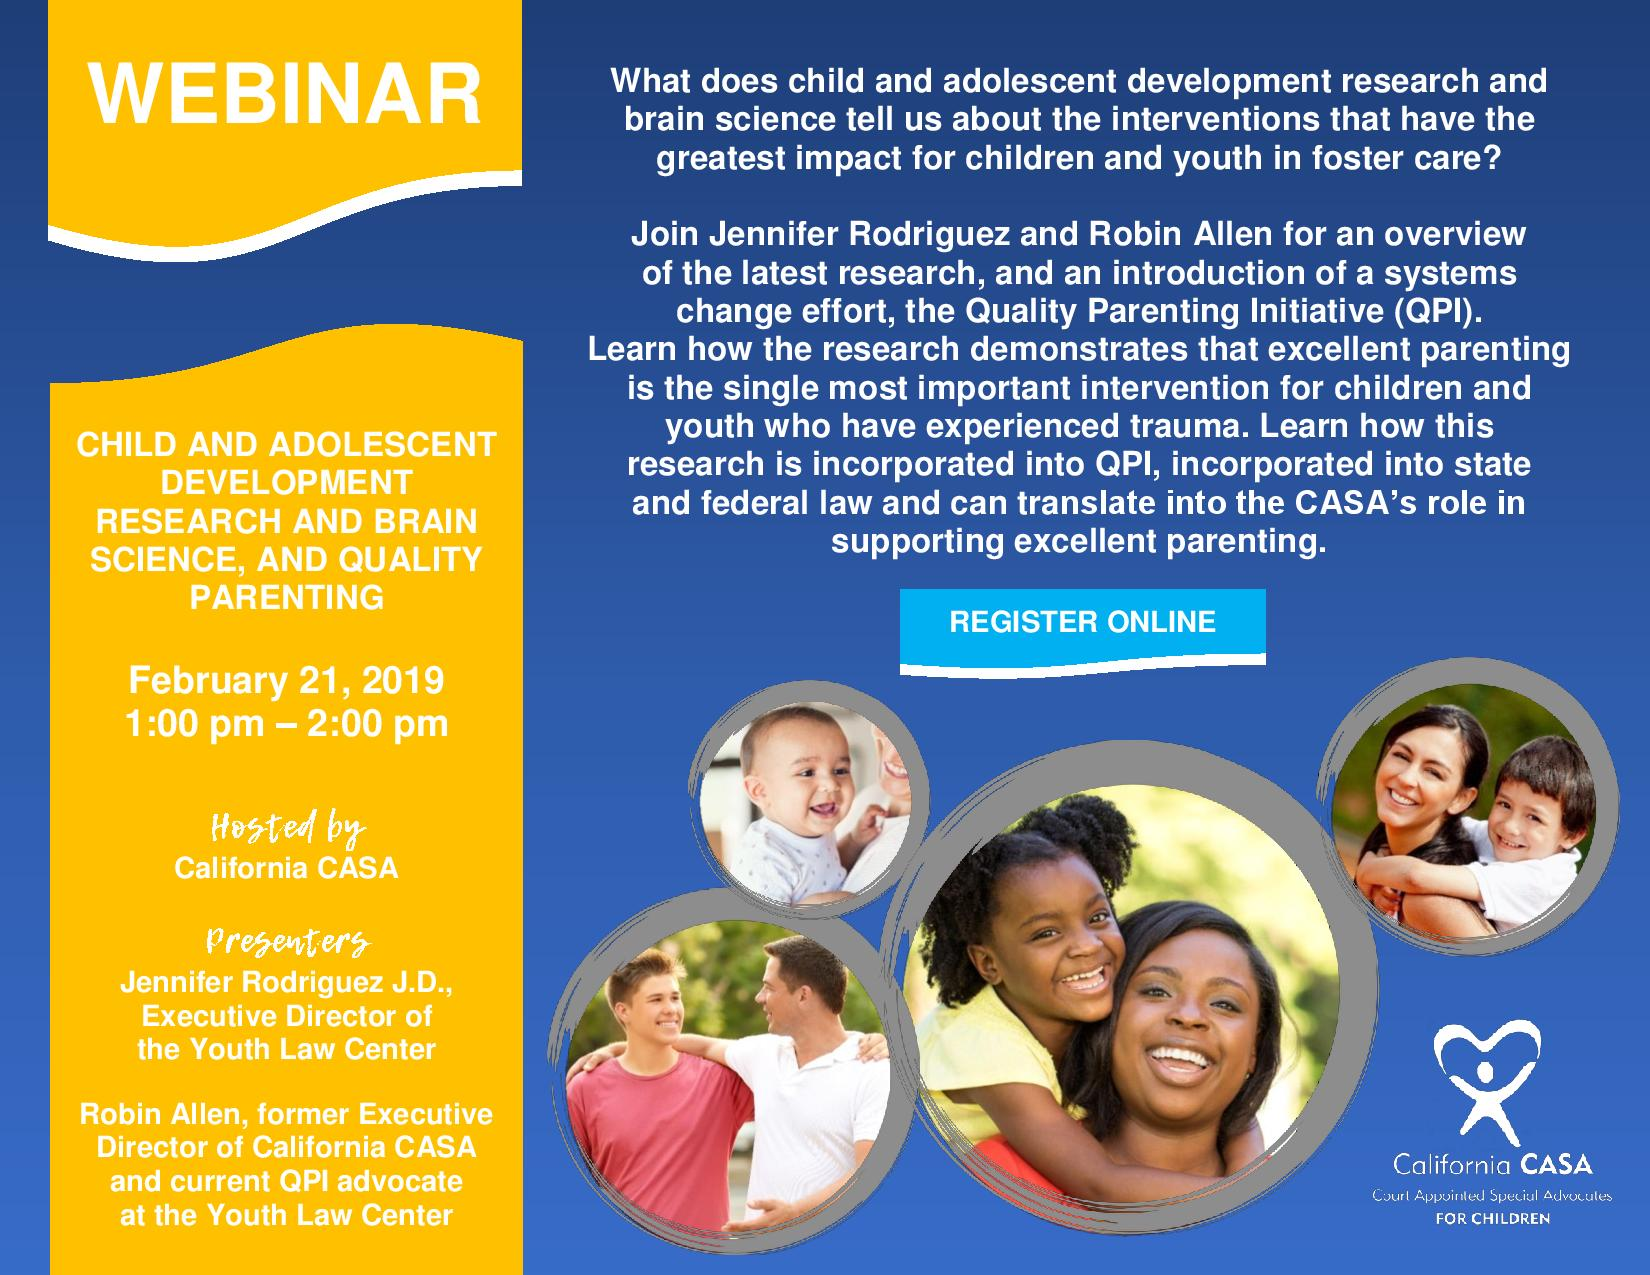 CASA Webinar: Research, Brain Science, and Quality Parenting